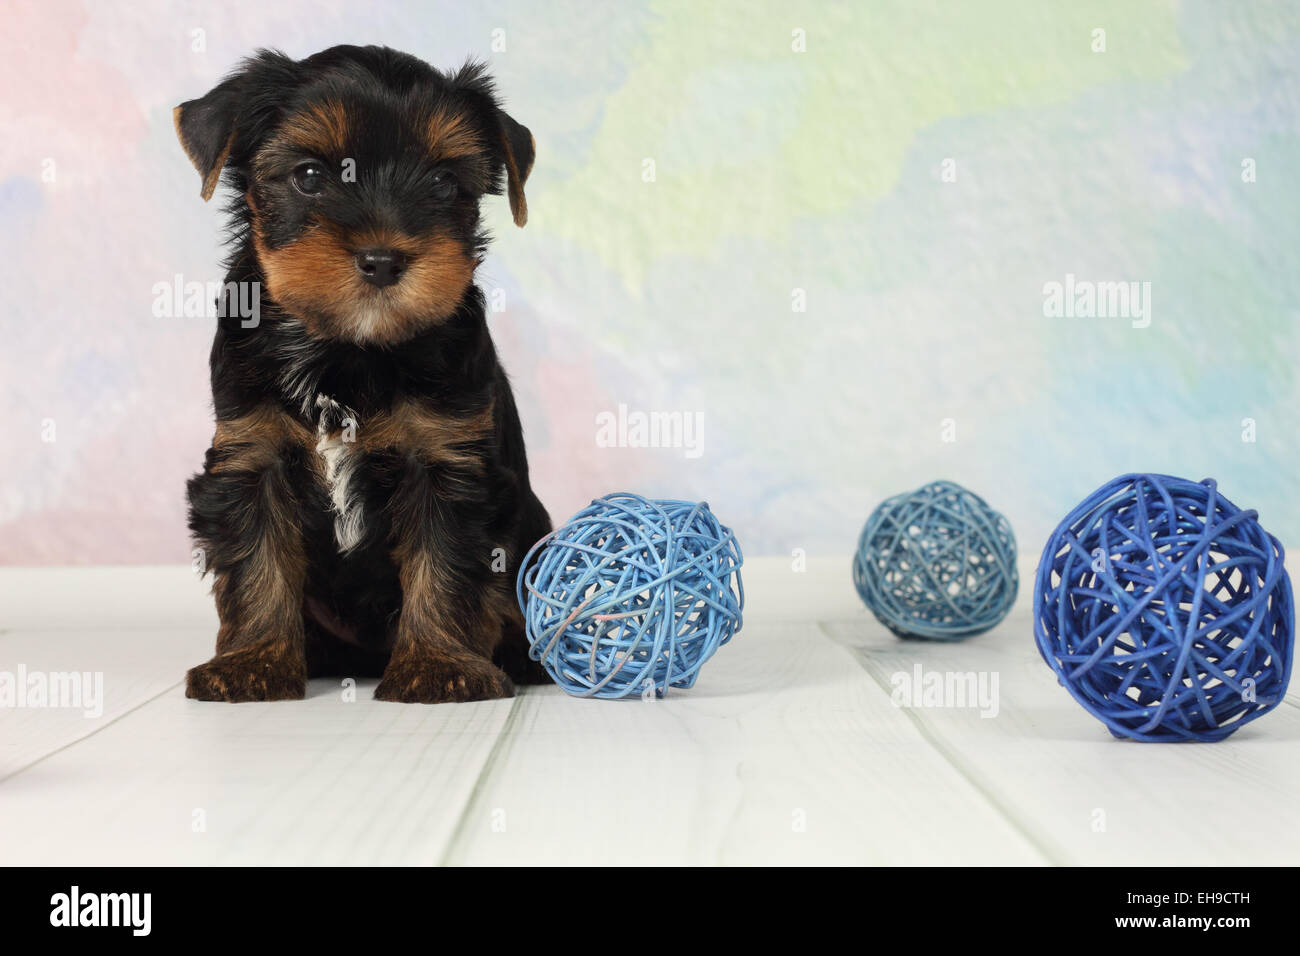 Yorkshire terrier puppy - Stock Image